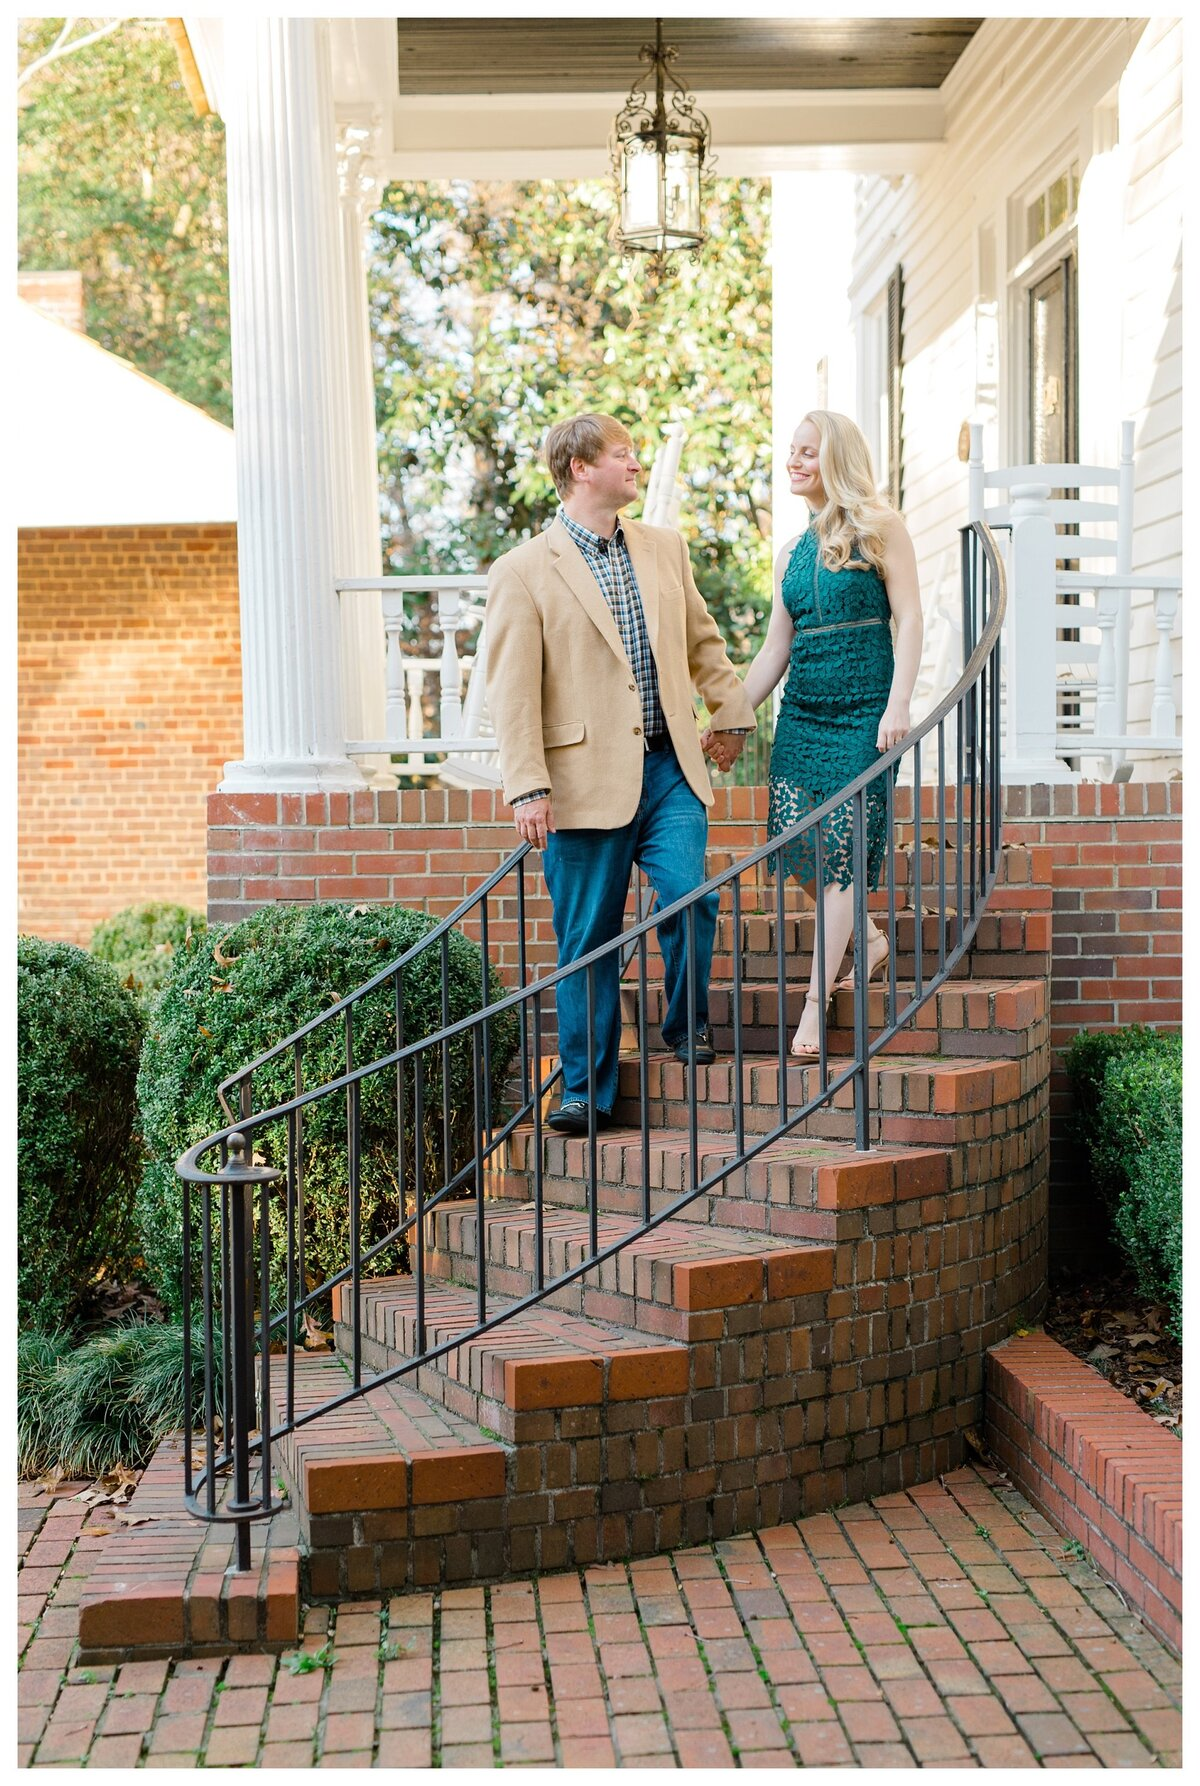 canady-engagements-atlanta-wedding-photographer-16